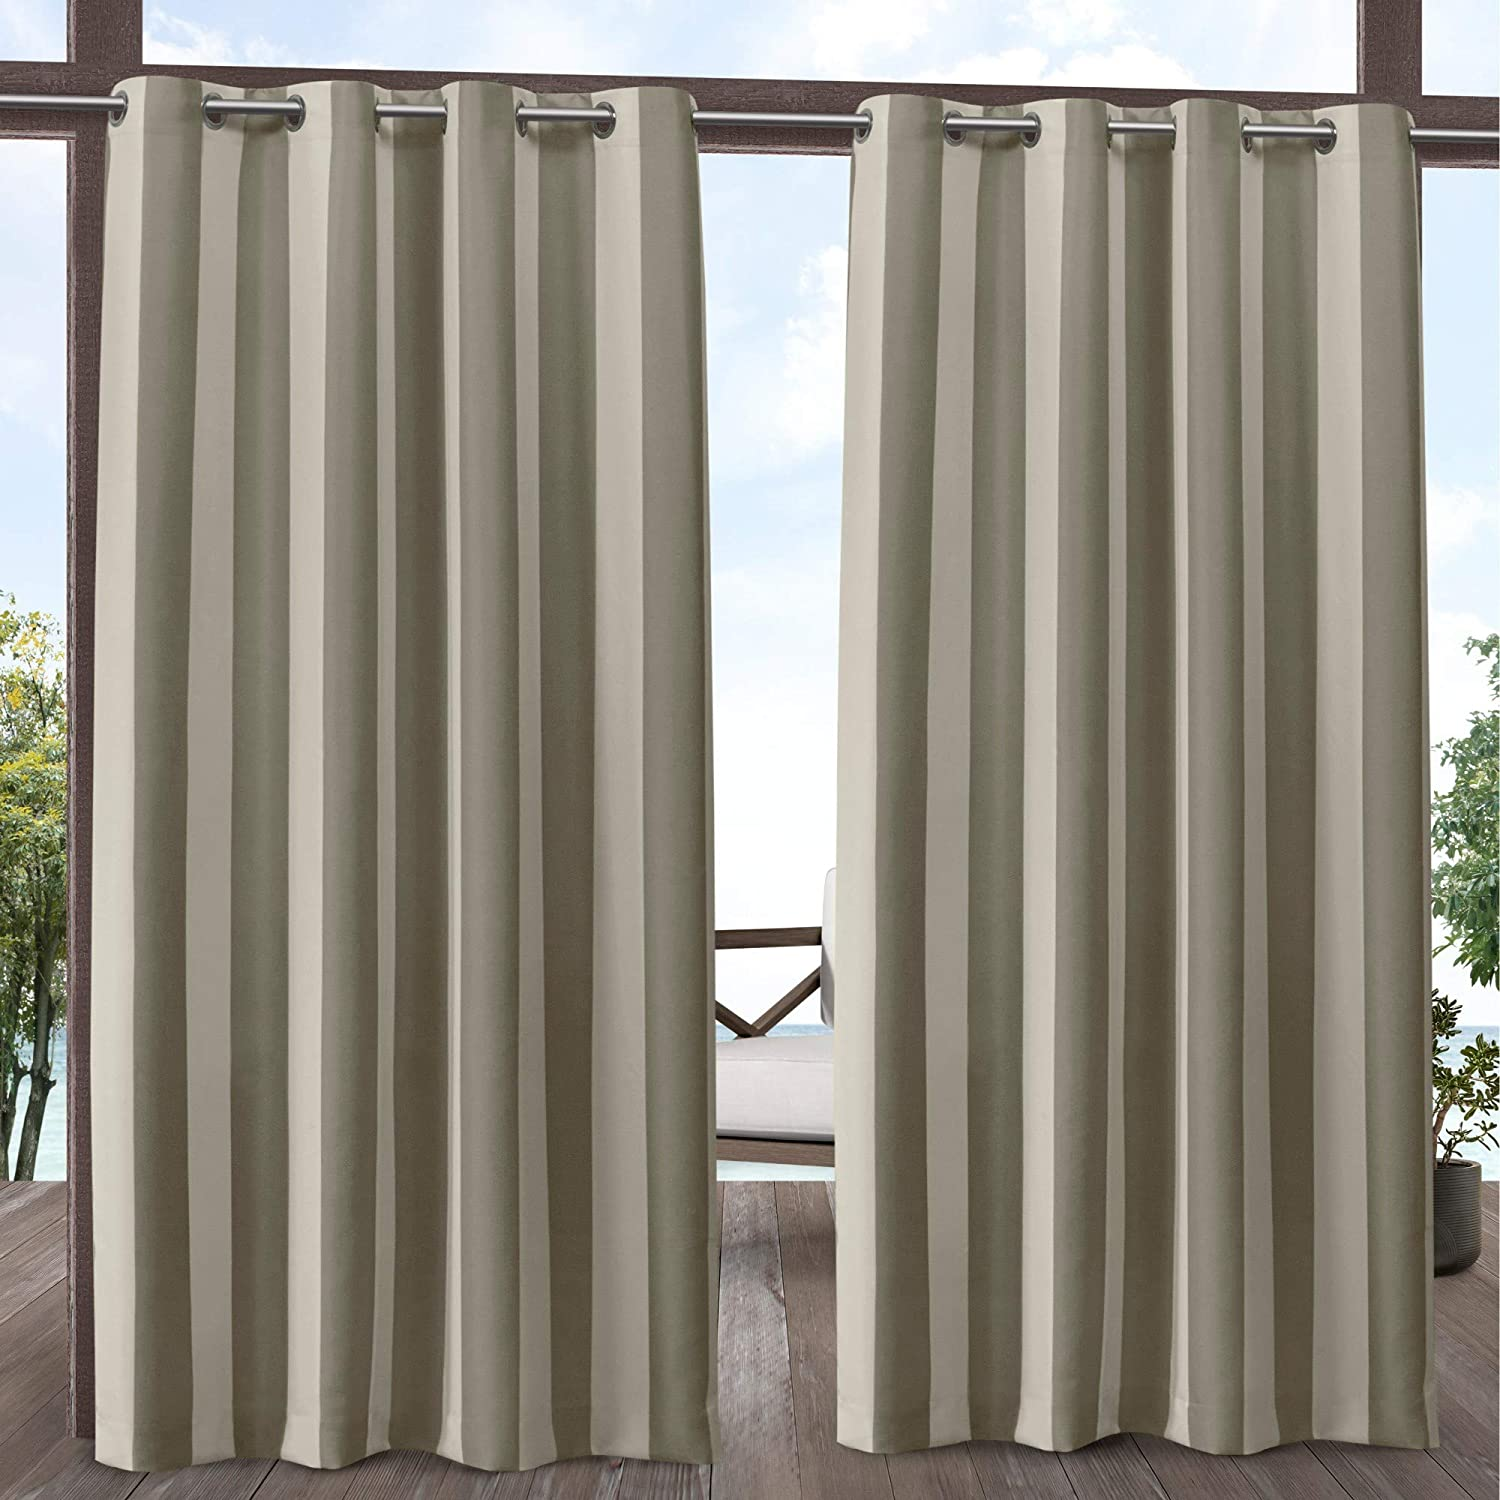 Exclusive Home Curtains Canopy Stripe Indoor/Outdoor Grommet Top Curtain Panel Pair, 54x96, Taupe/Sand